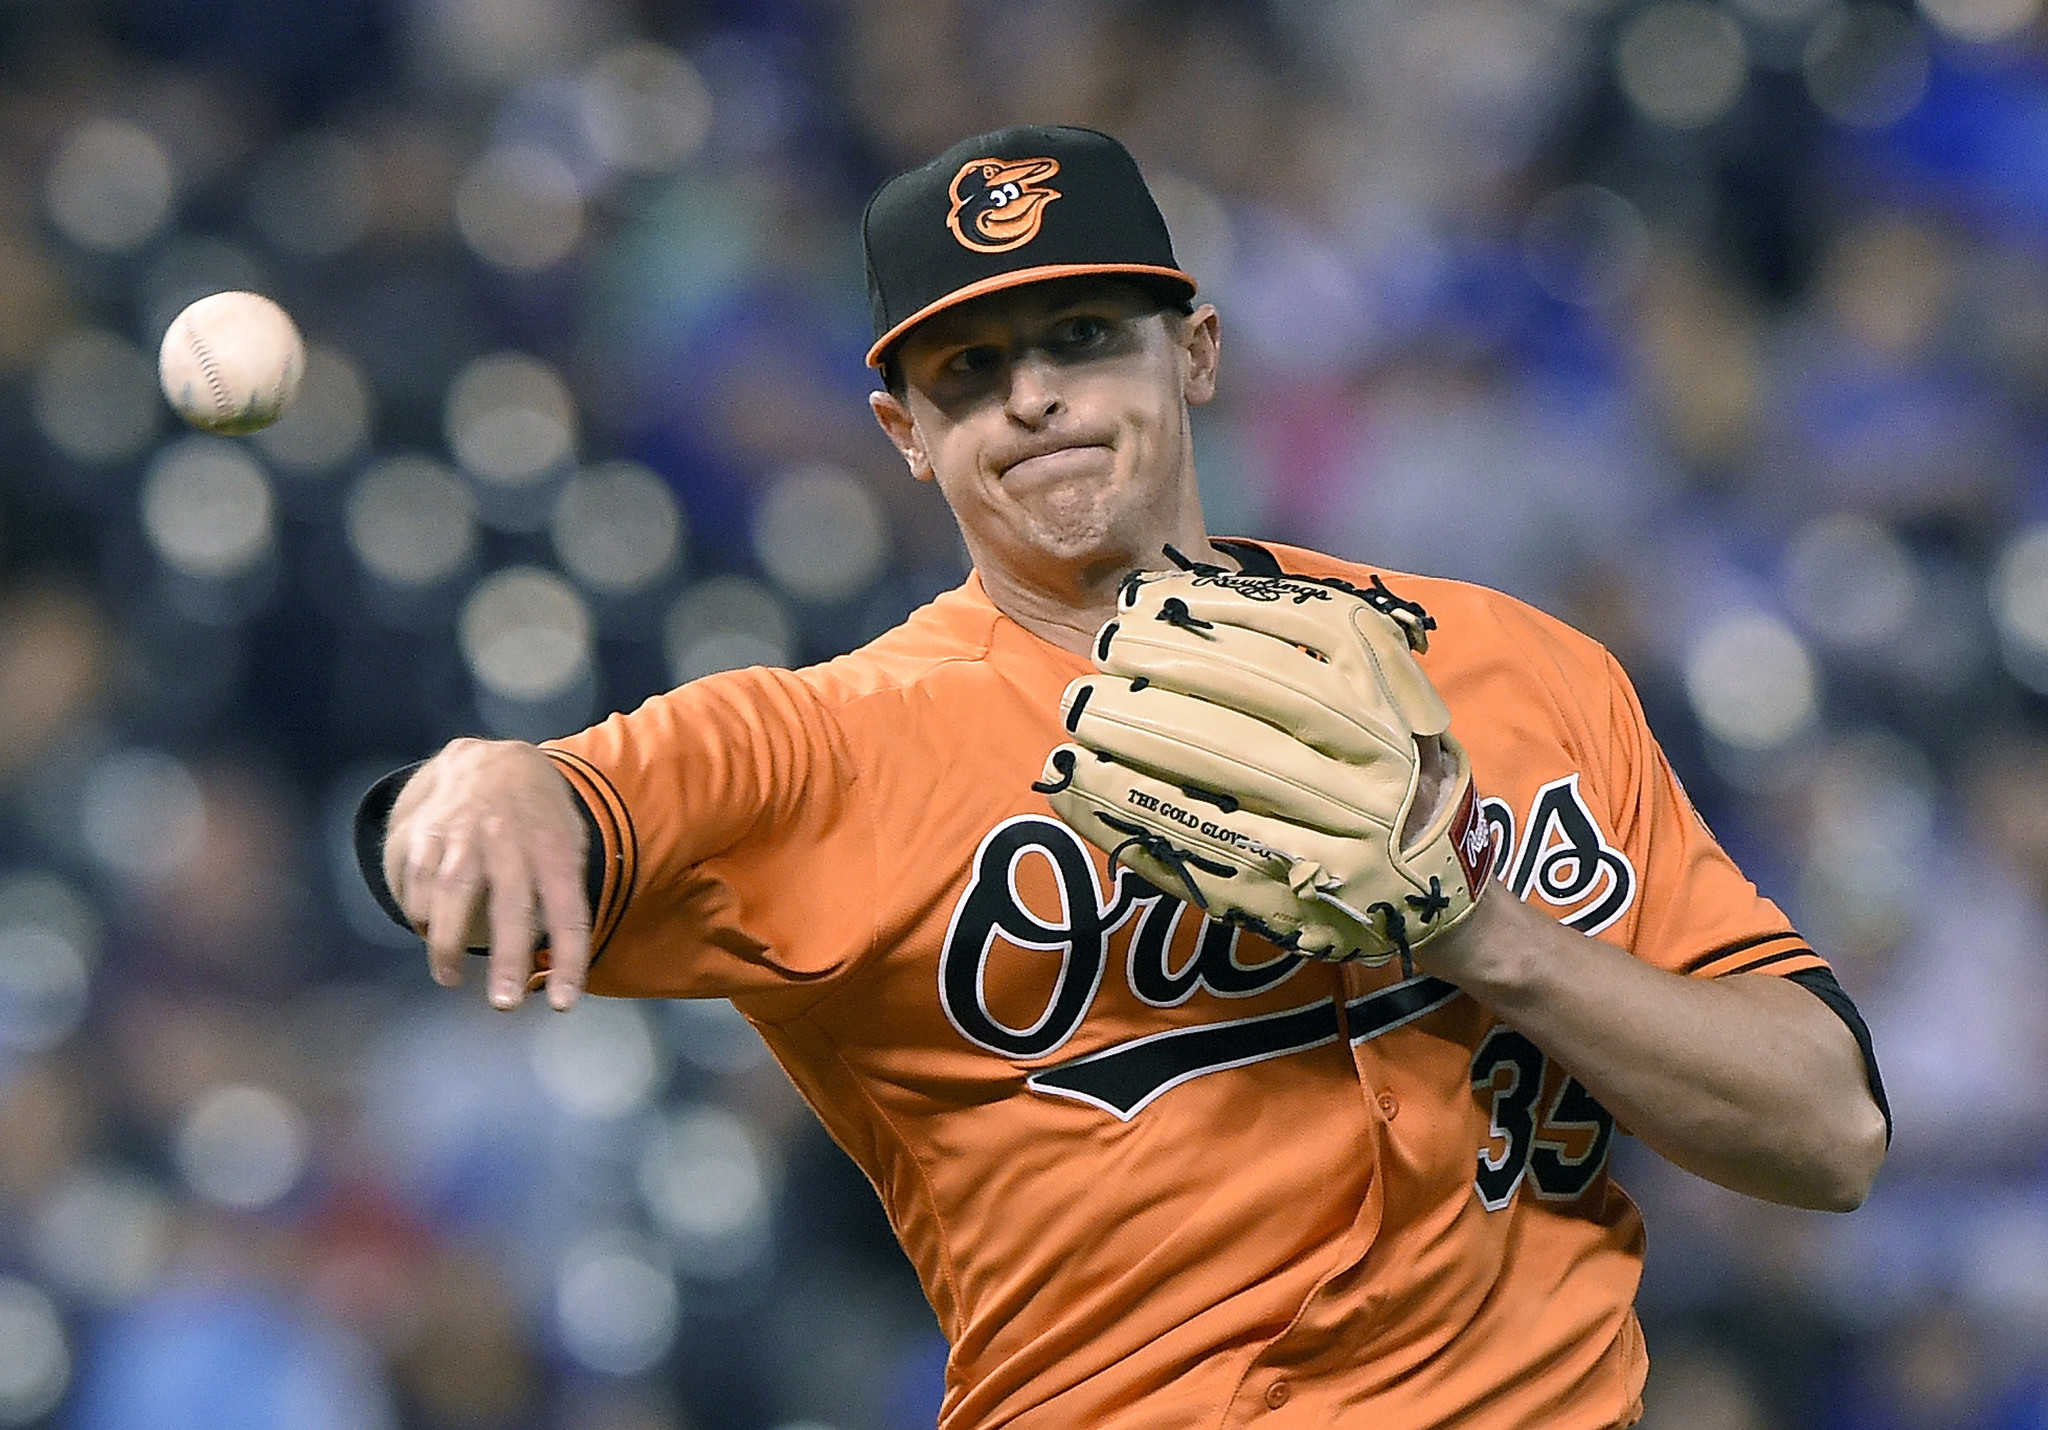 Bal-brad-brach-has-a-starter-s-arsenal-but-orioles-are-benefiting-from-the-fact-no-one-let-him-try-it-20160502